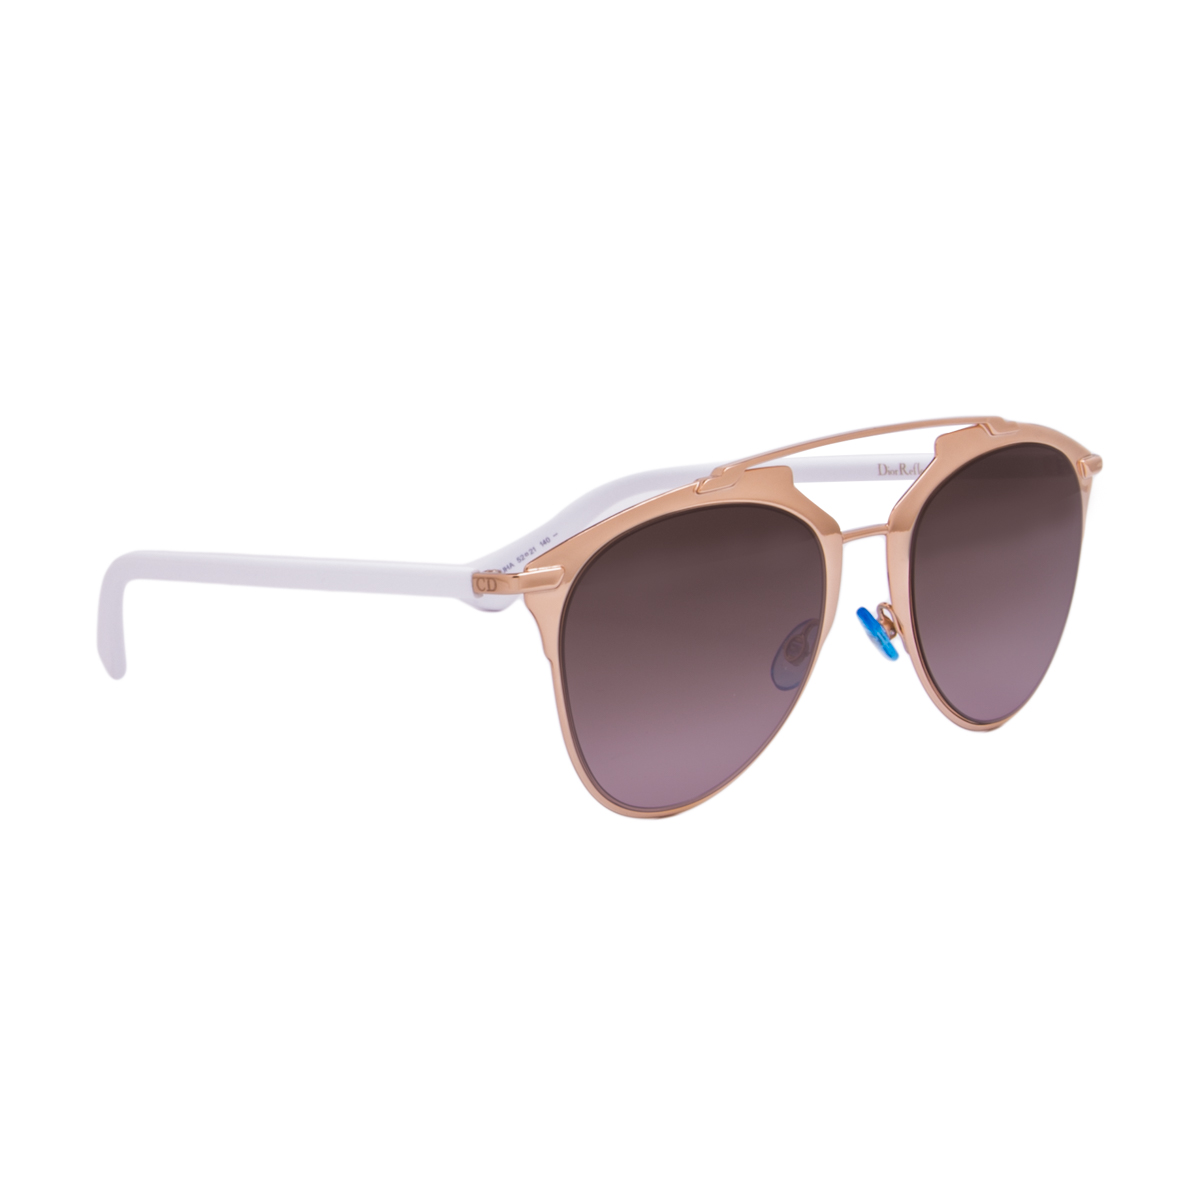 0dc3eee9647 Christian Dior Reflected Sunglasses Rose Gold